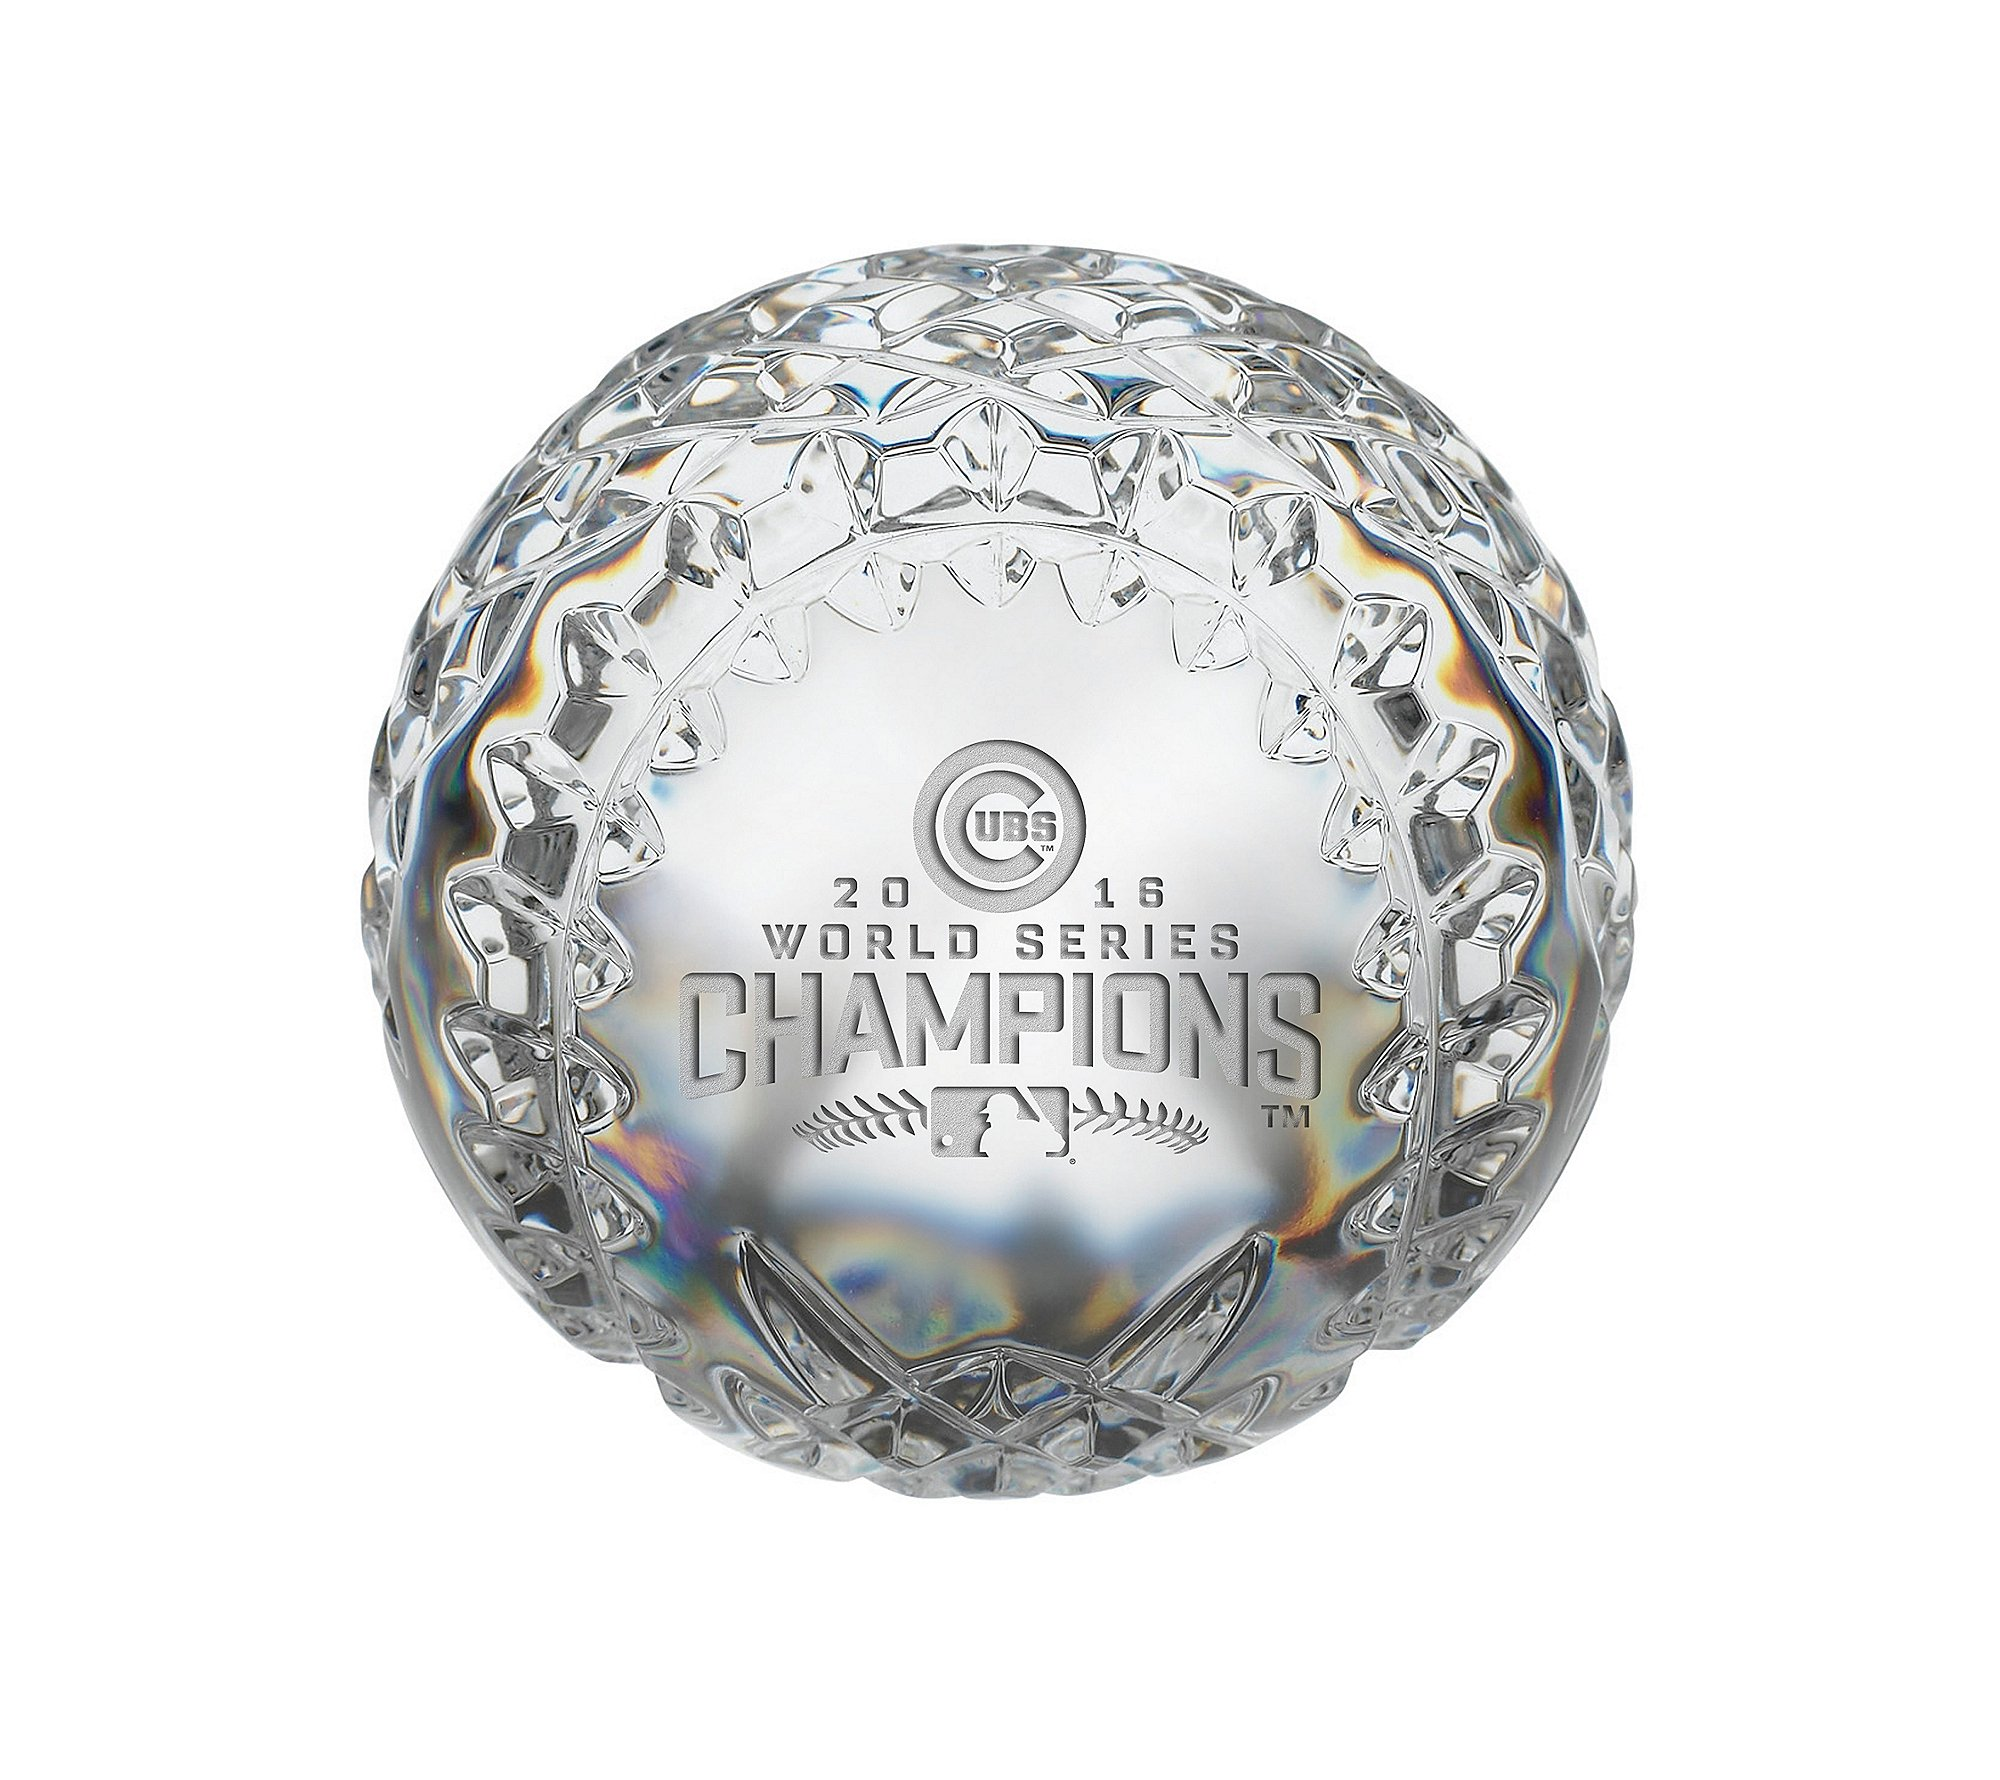 Waterford MLB Chicago Cubs 2016 World Series Champs Baseball